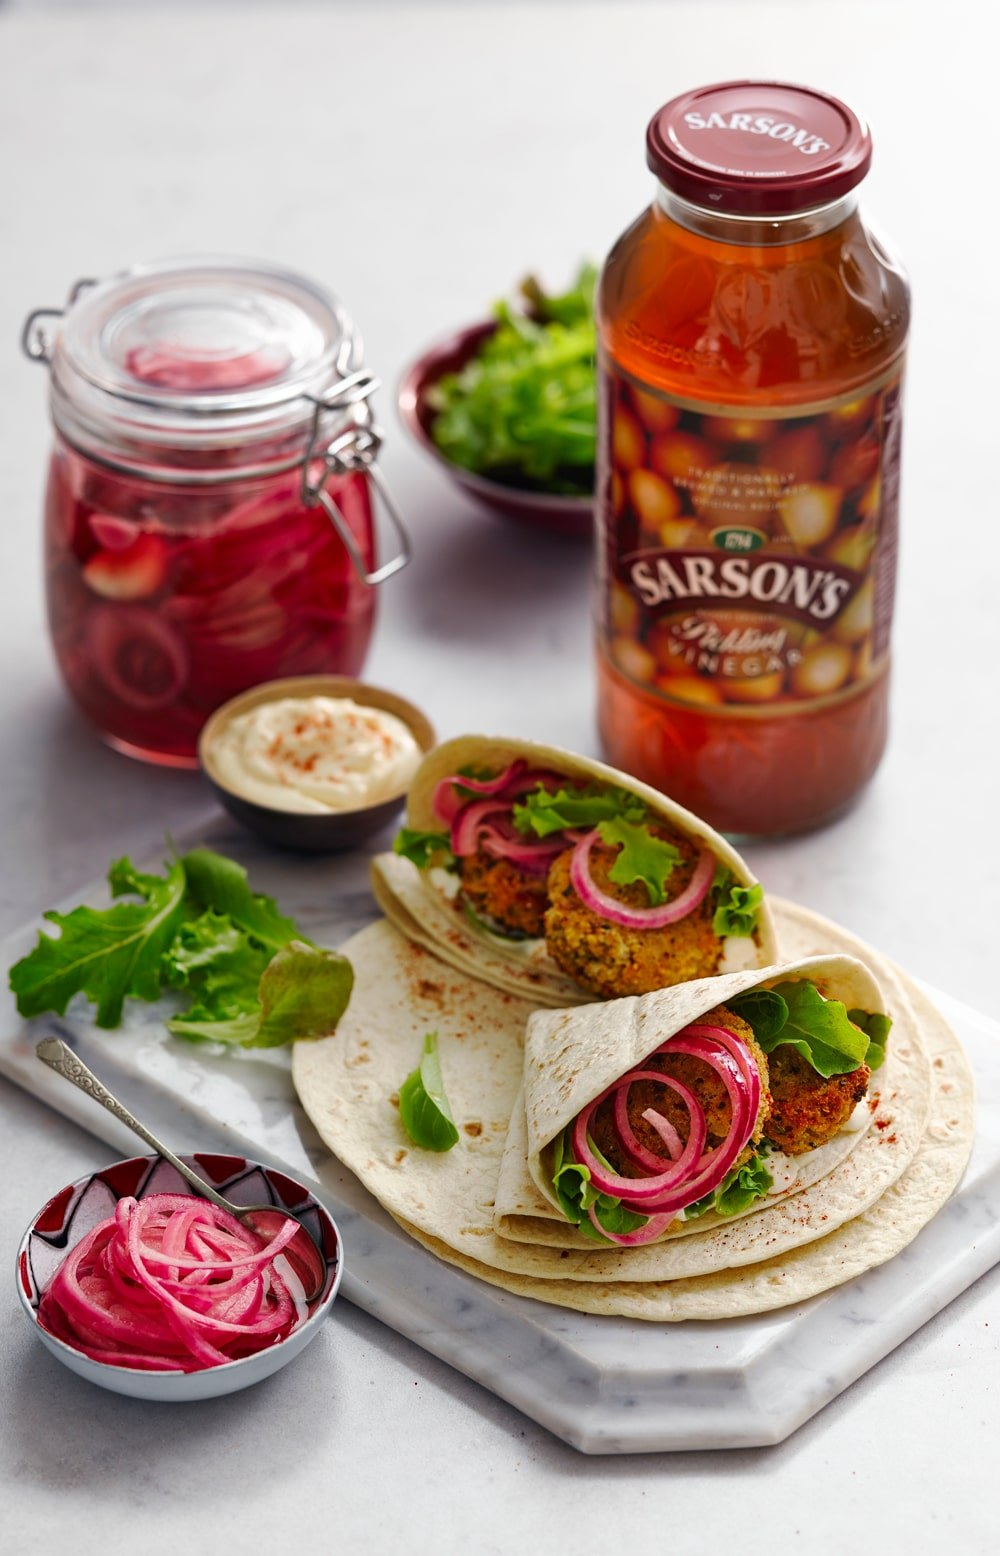 Chilli bean bite wrap with pickled red onion (vegetarian street food) - here's how to make this tasty sandwich alternative